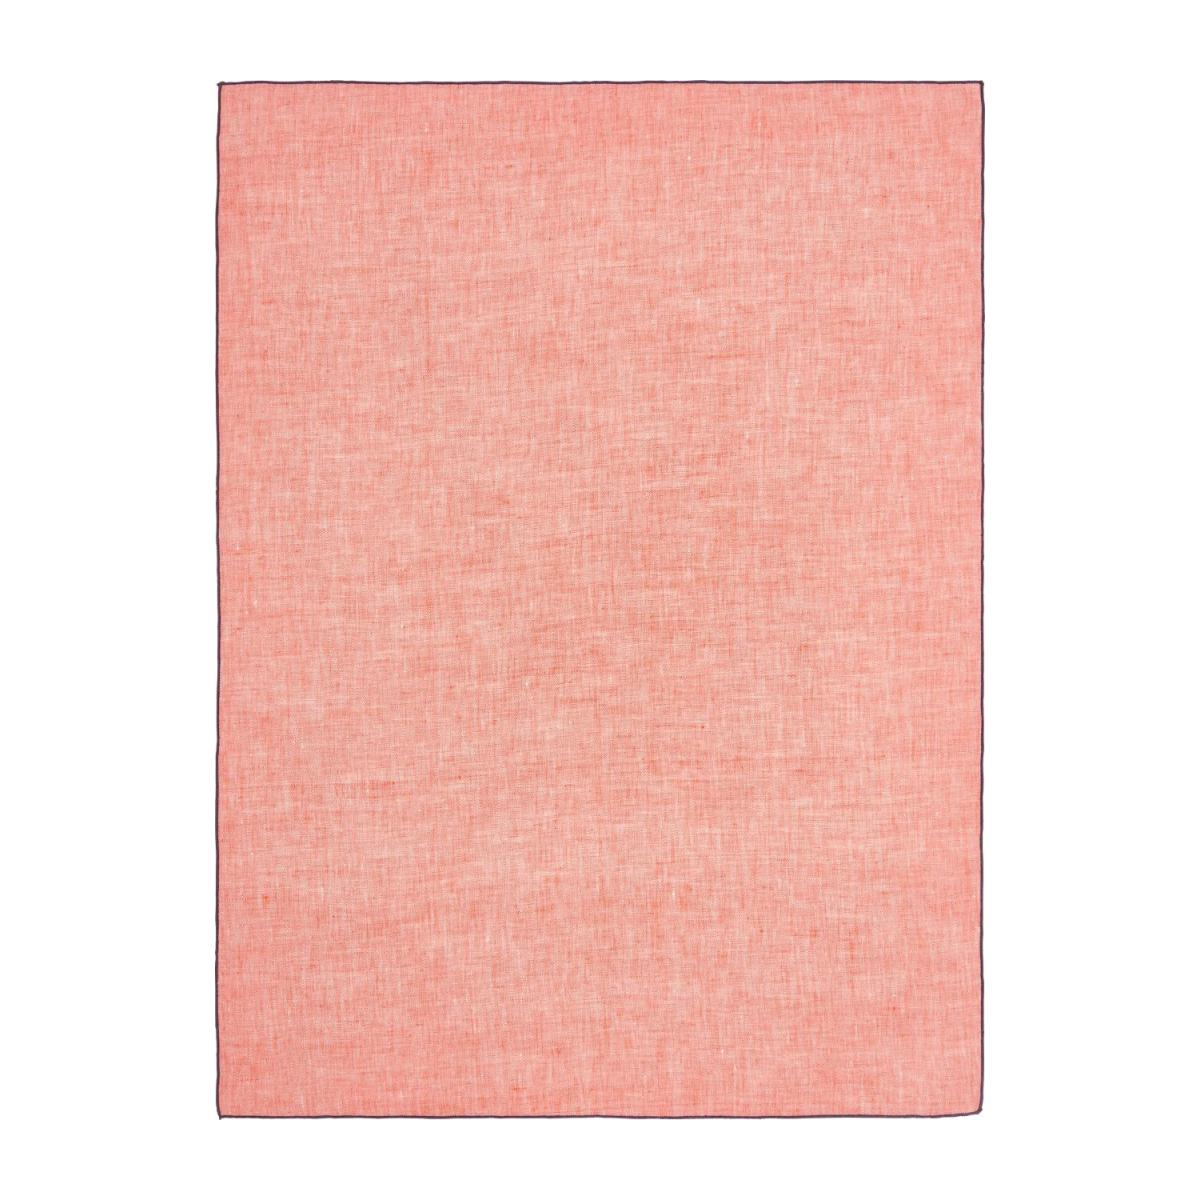 Kitchen towel 50x70cm made of flax, coral n°1